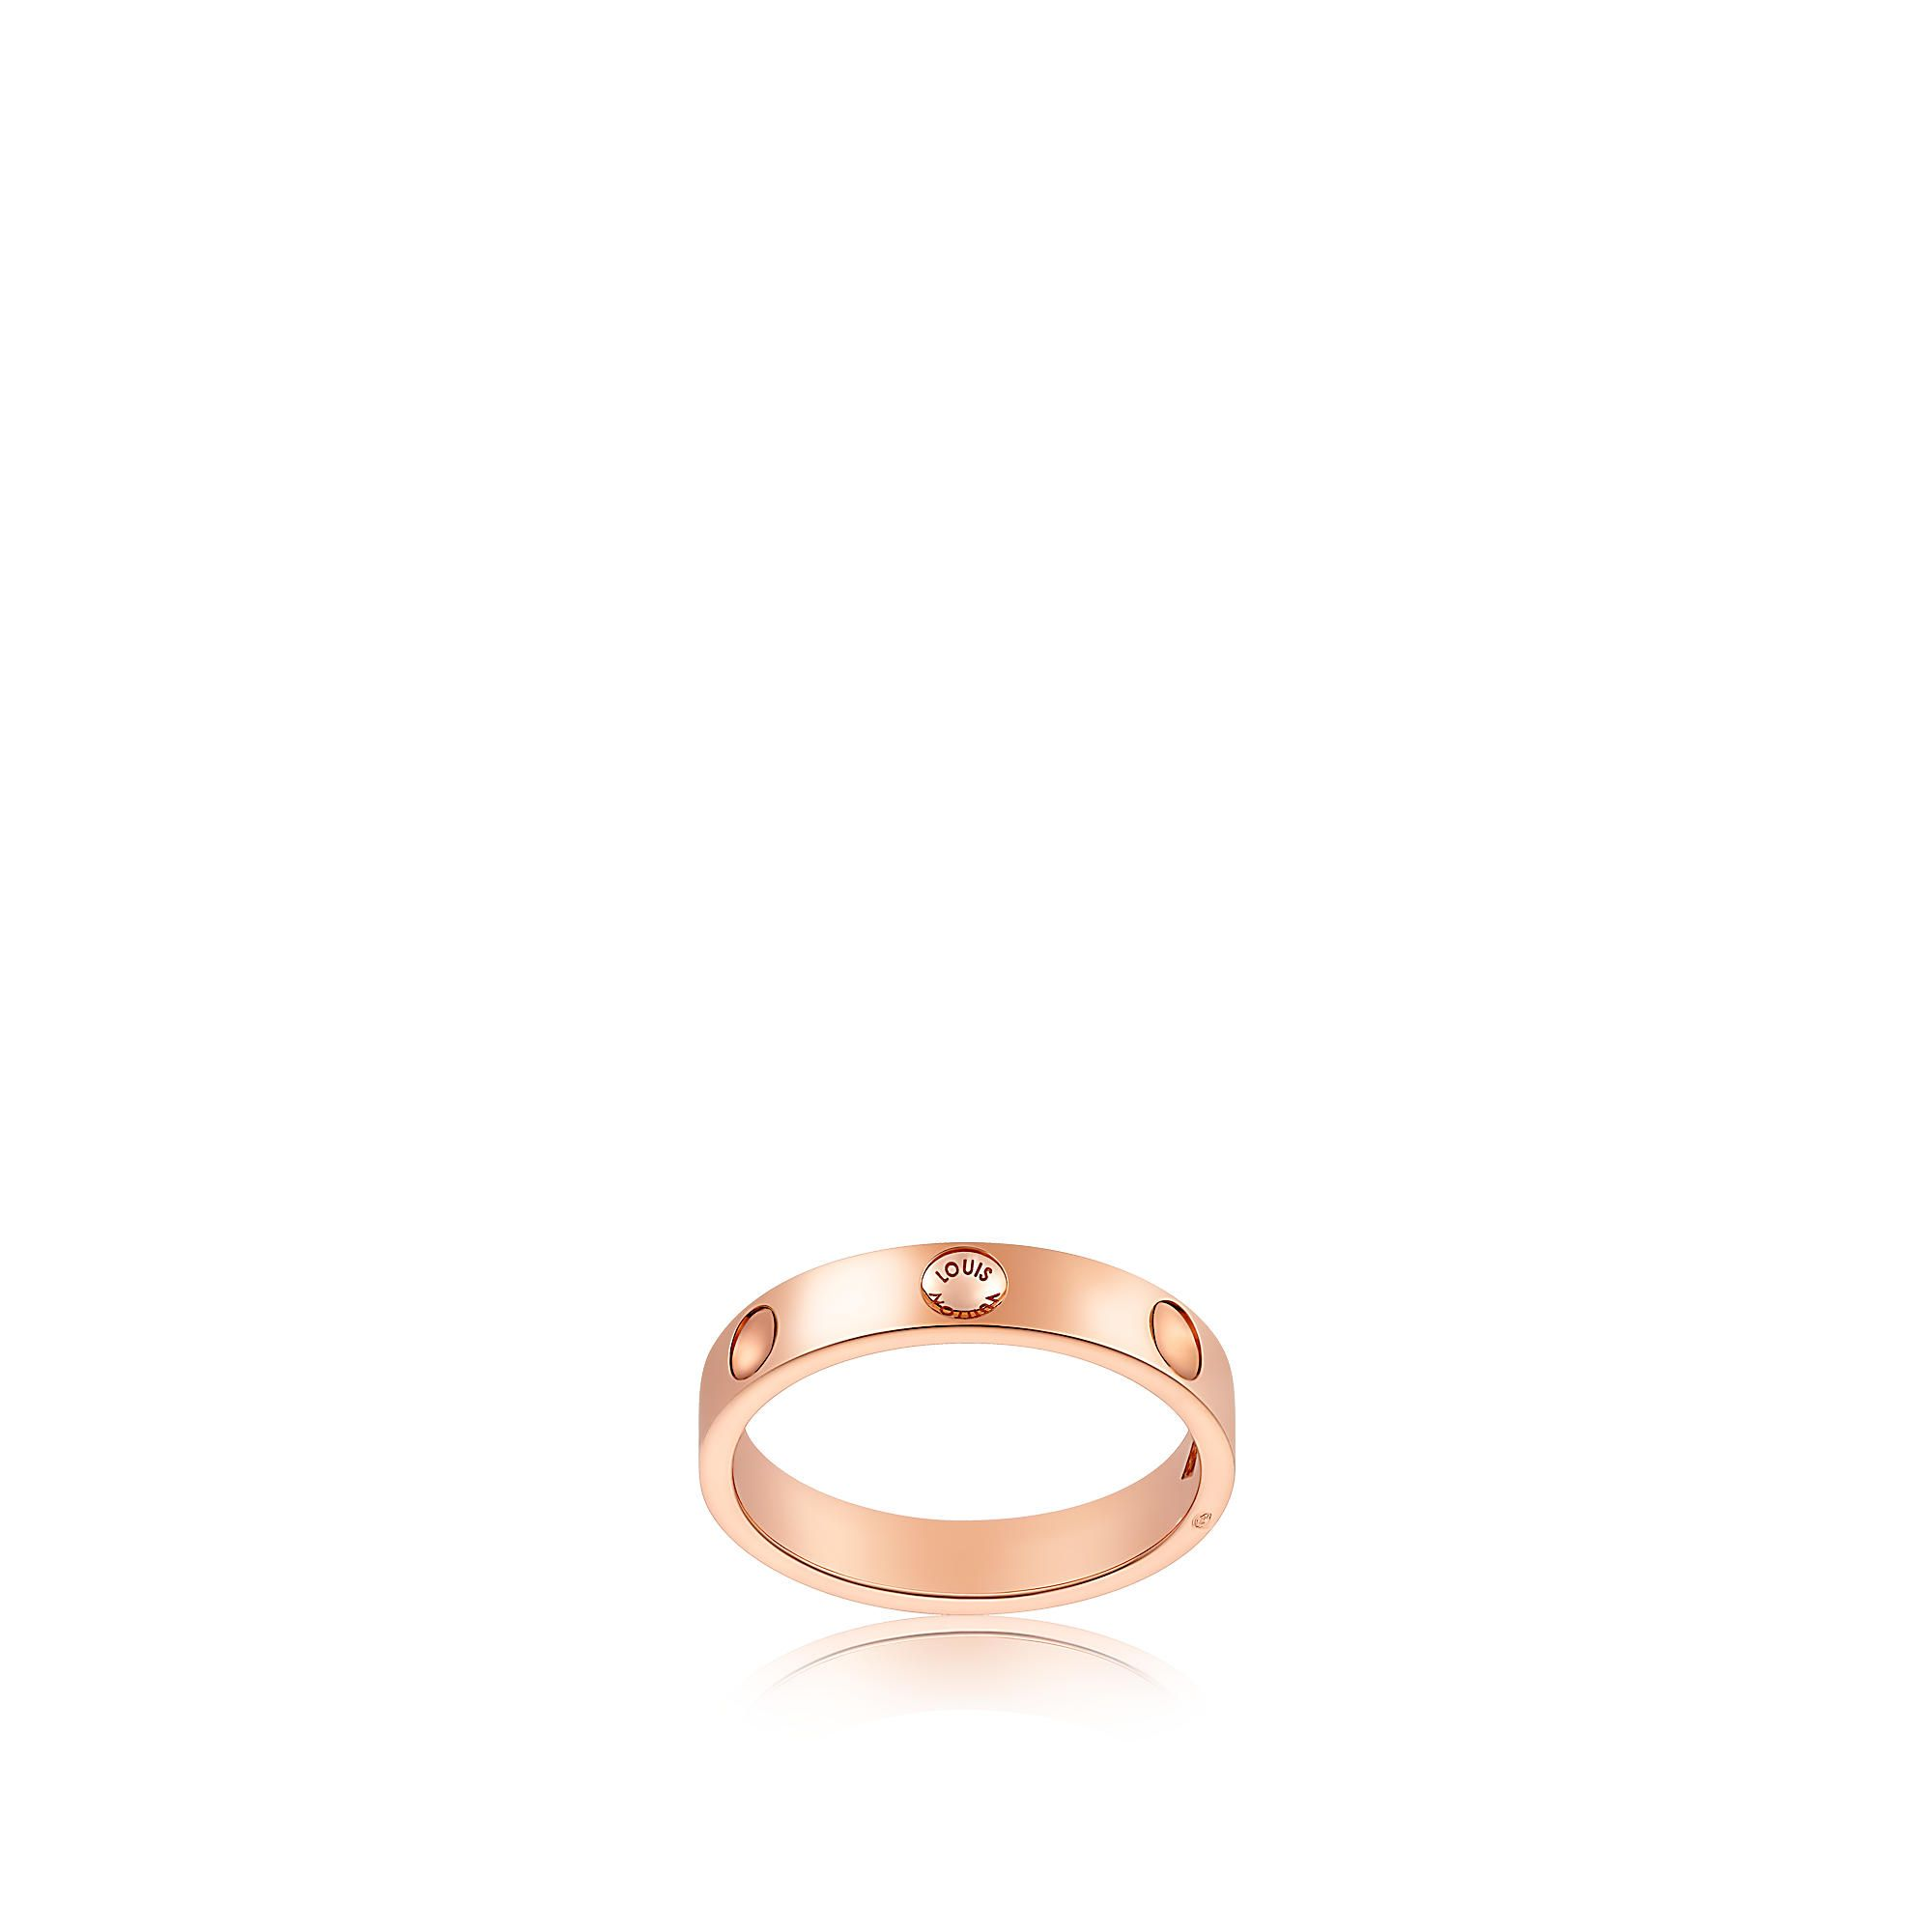 Entdecken sie empreinte ring rotgold via louis vuitton wedding